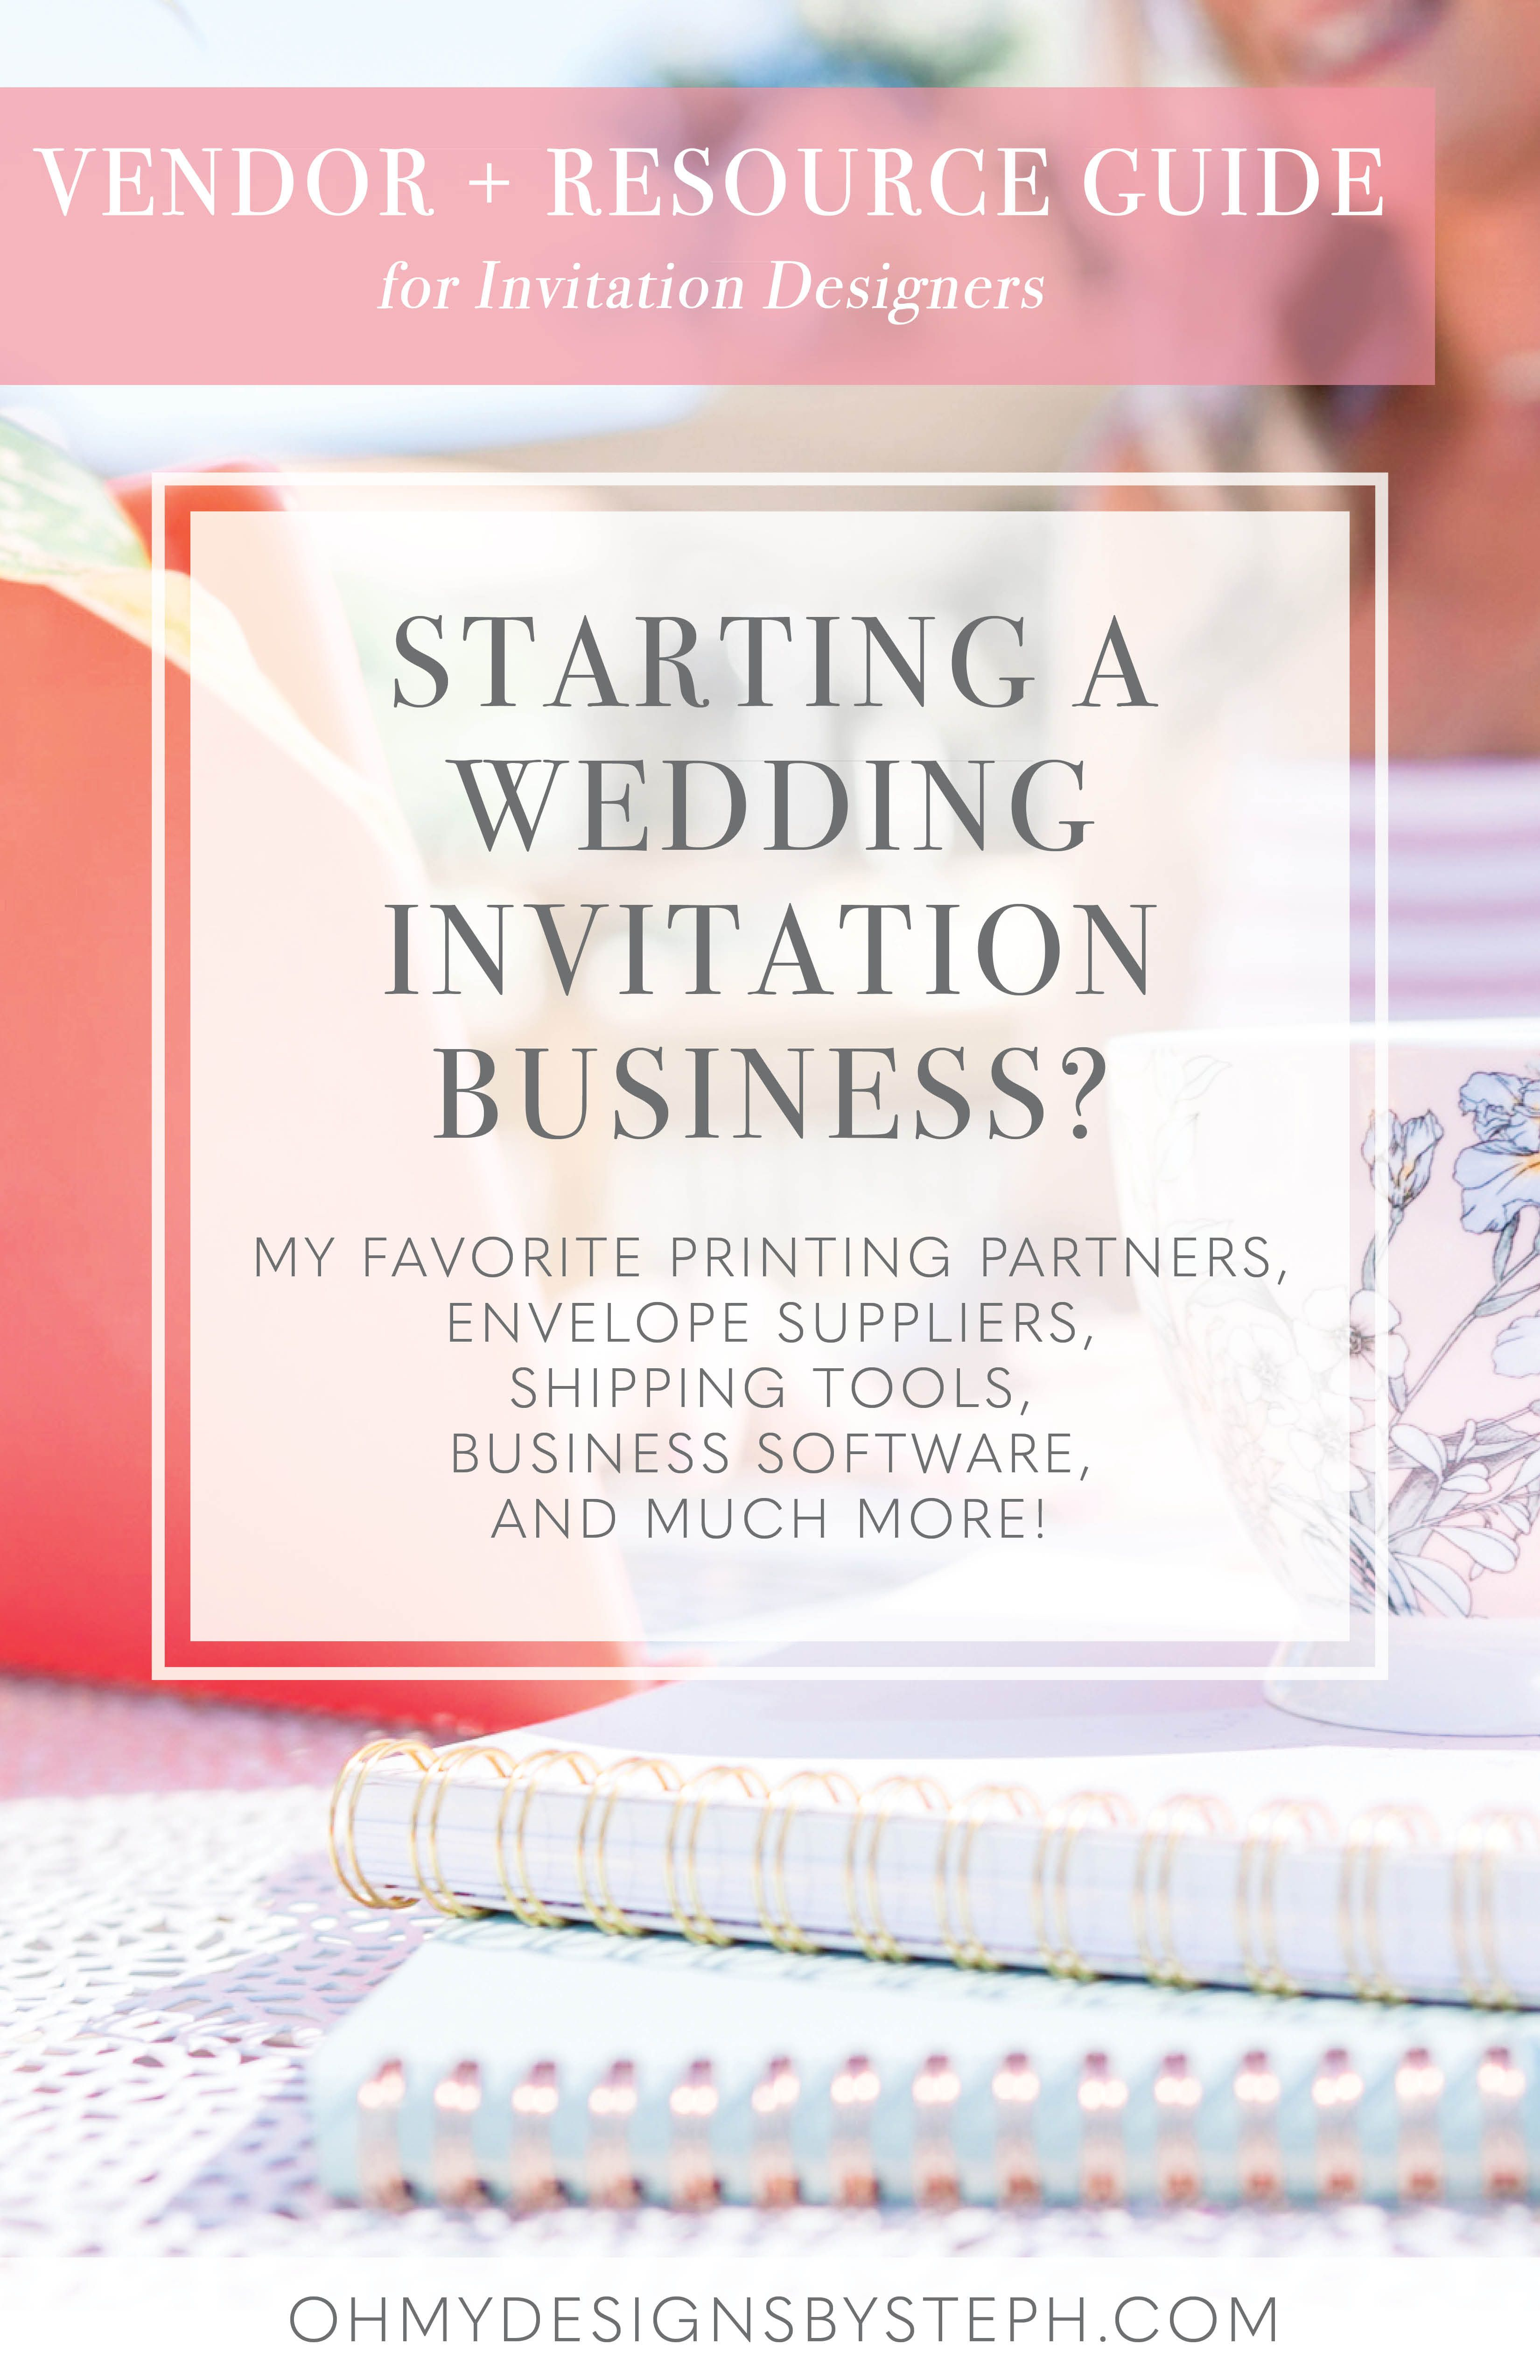 Vendor List And Resource Guide For Invitation Designers With